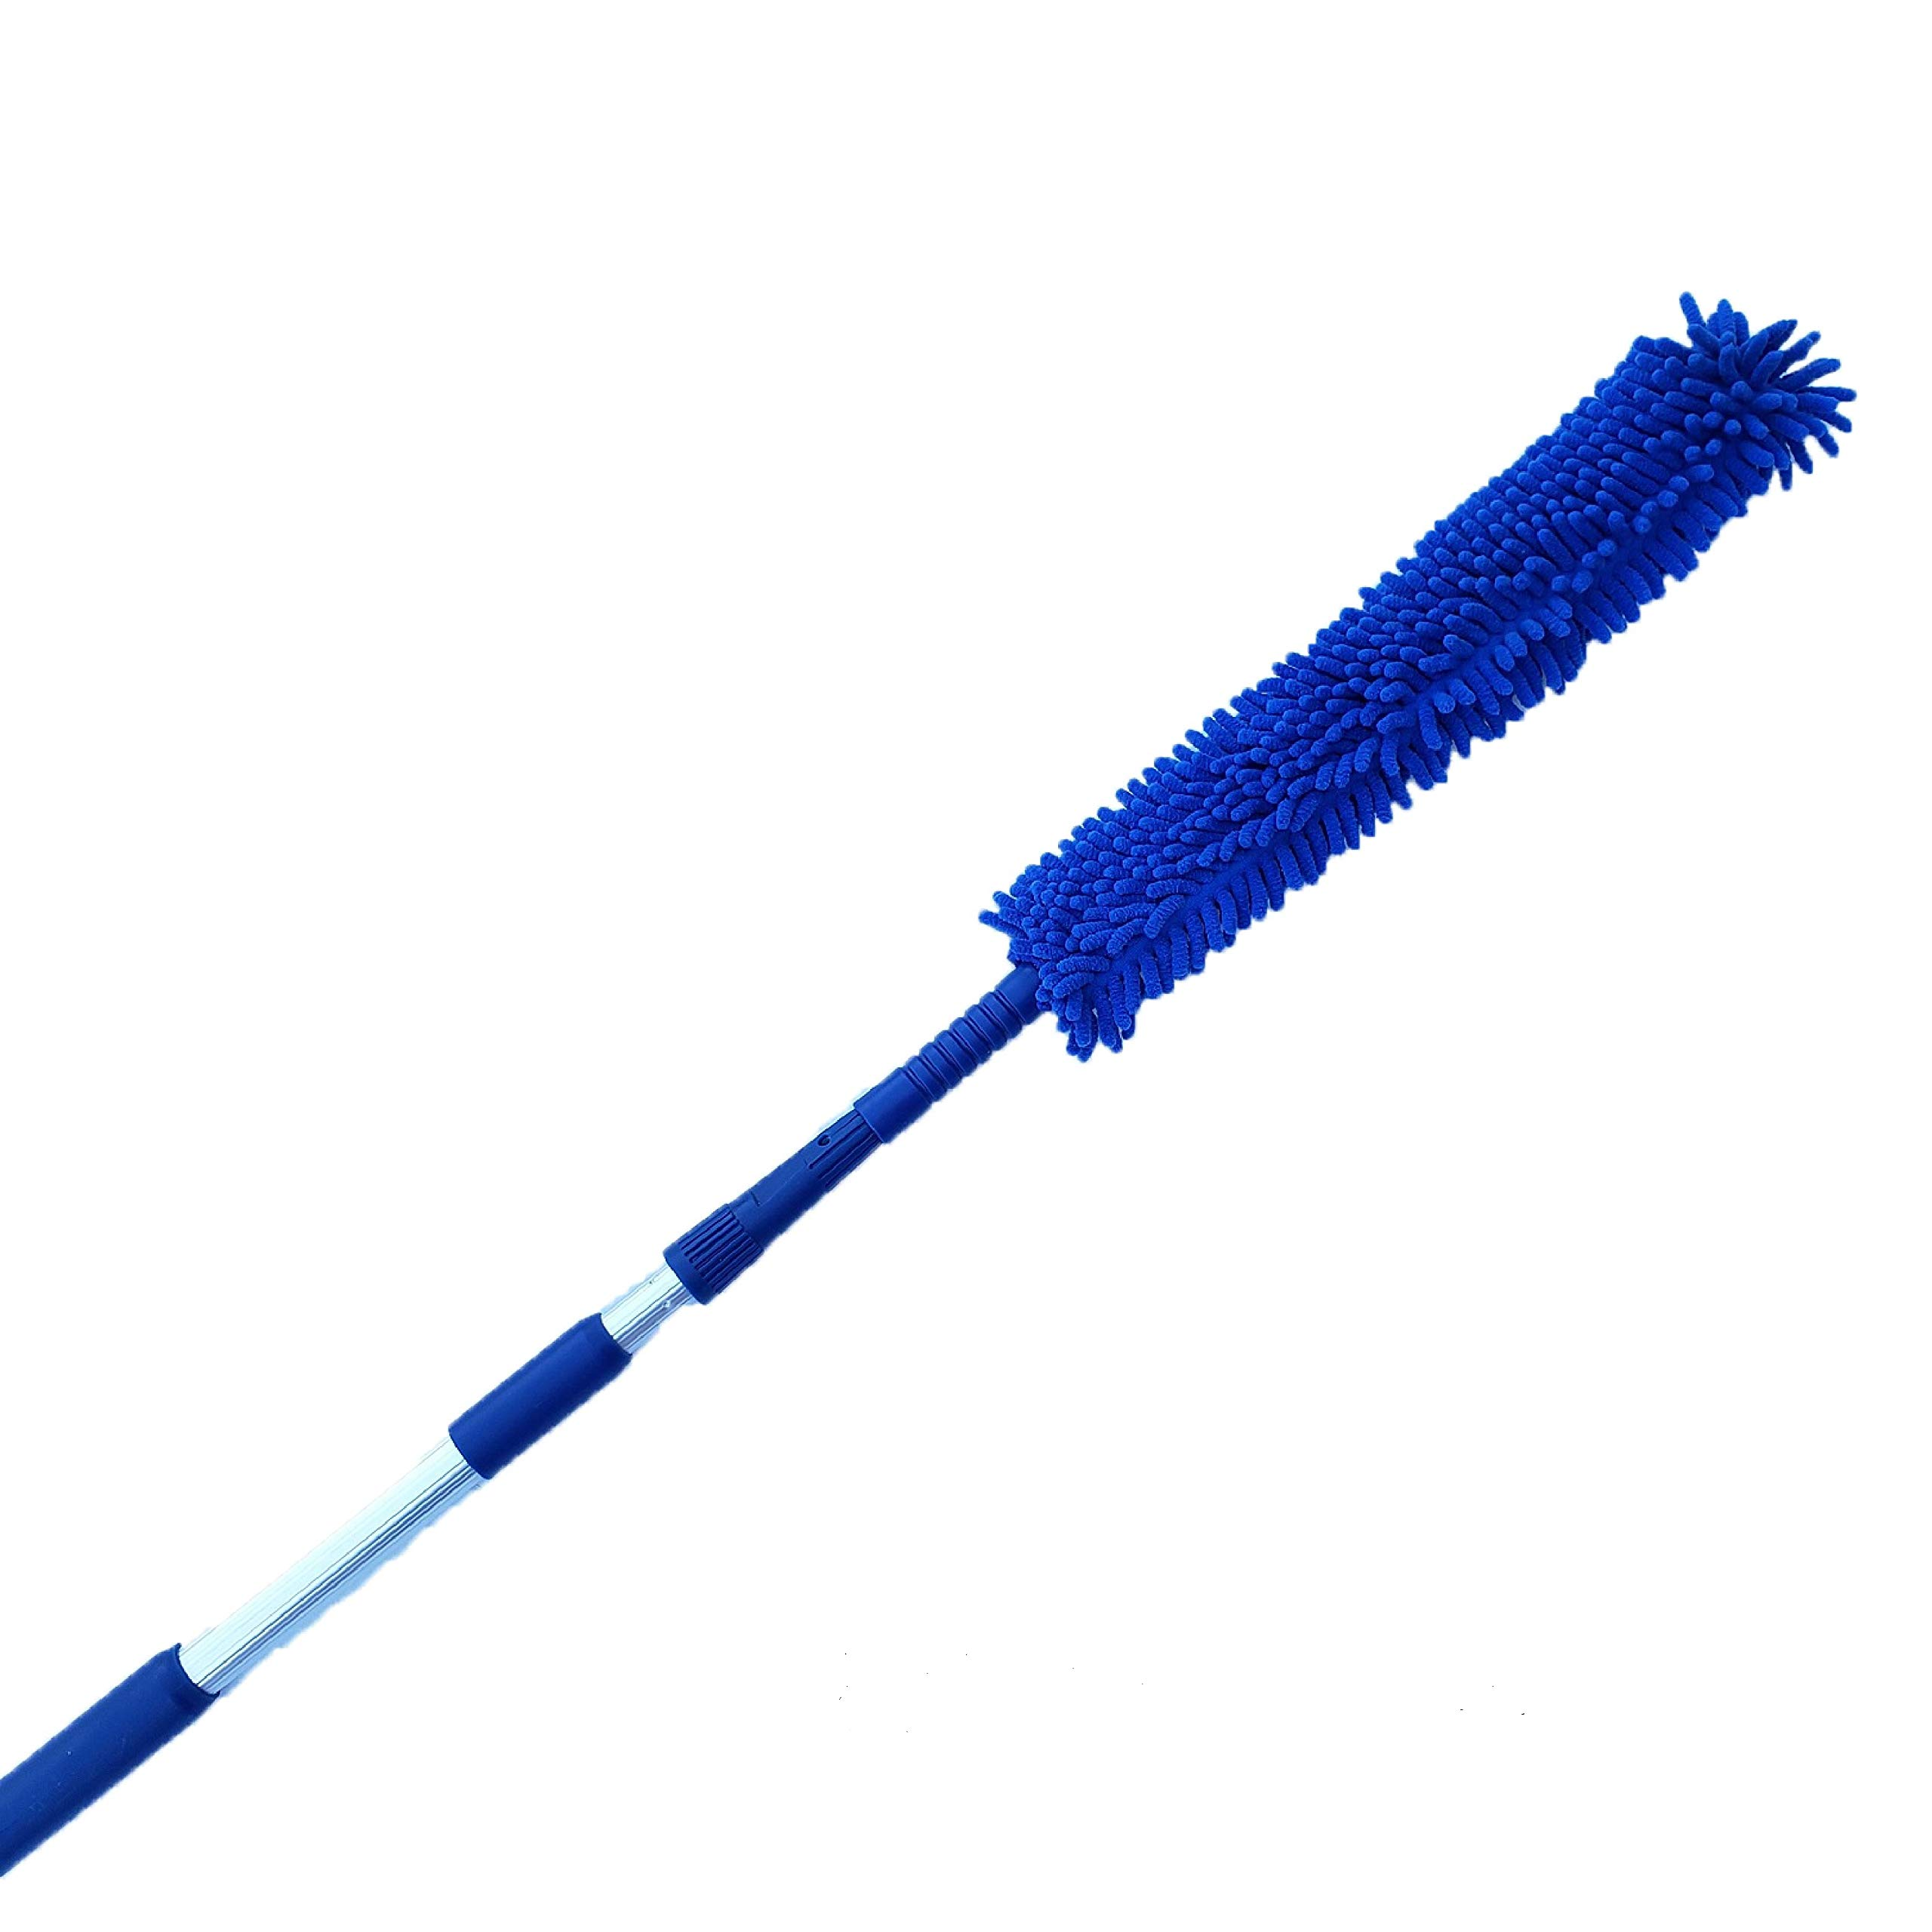 Duster For Cleaning Extendable, Ceiling Fan Duster, Cobweb Extension, Reach High Ceilings, Extends 18-20 Feet, Soft As Feather Duster